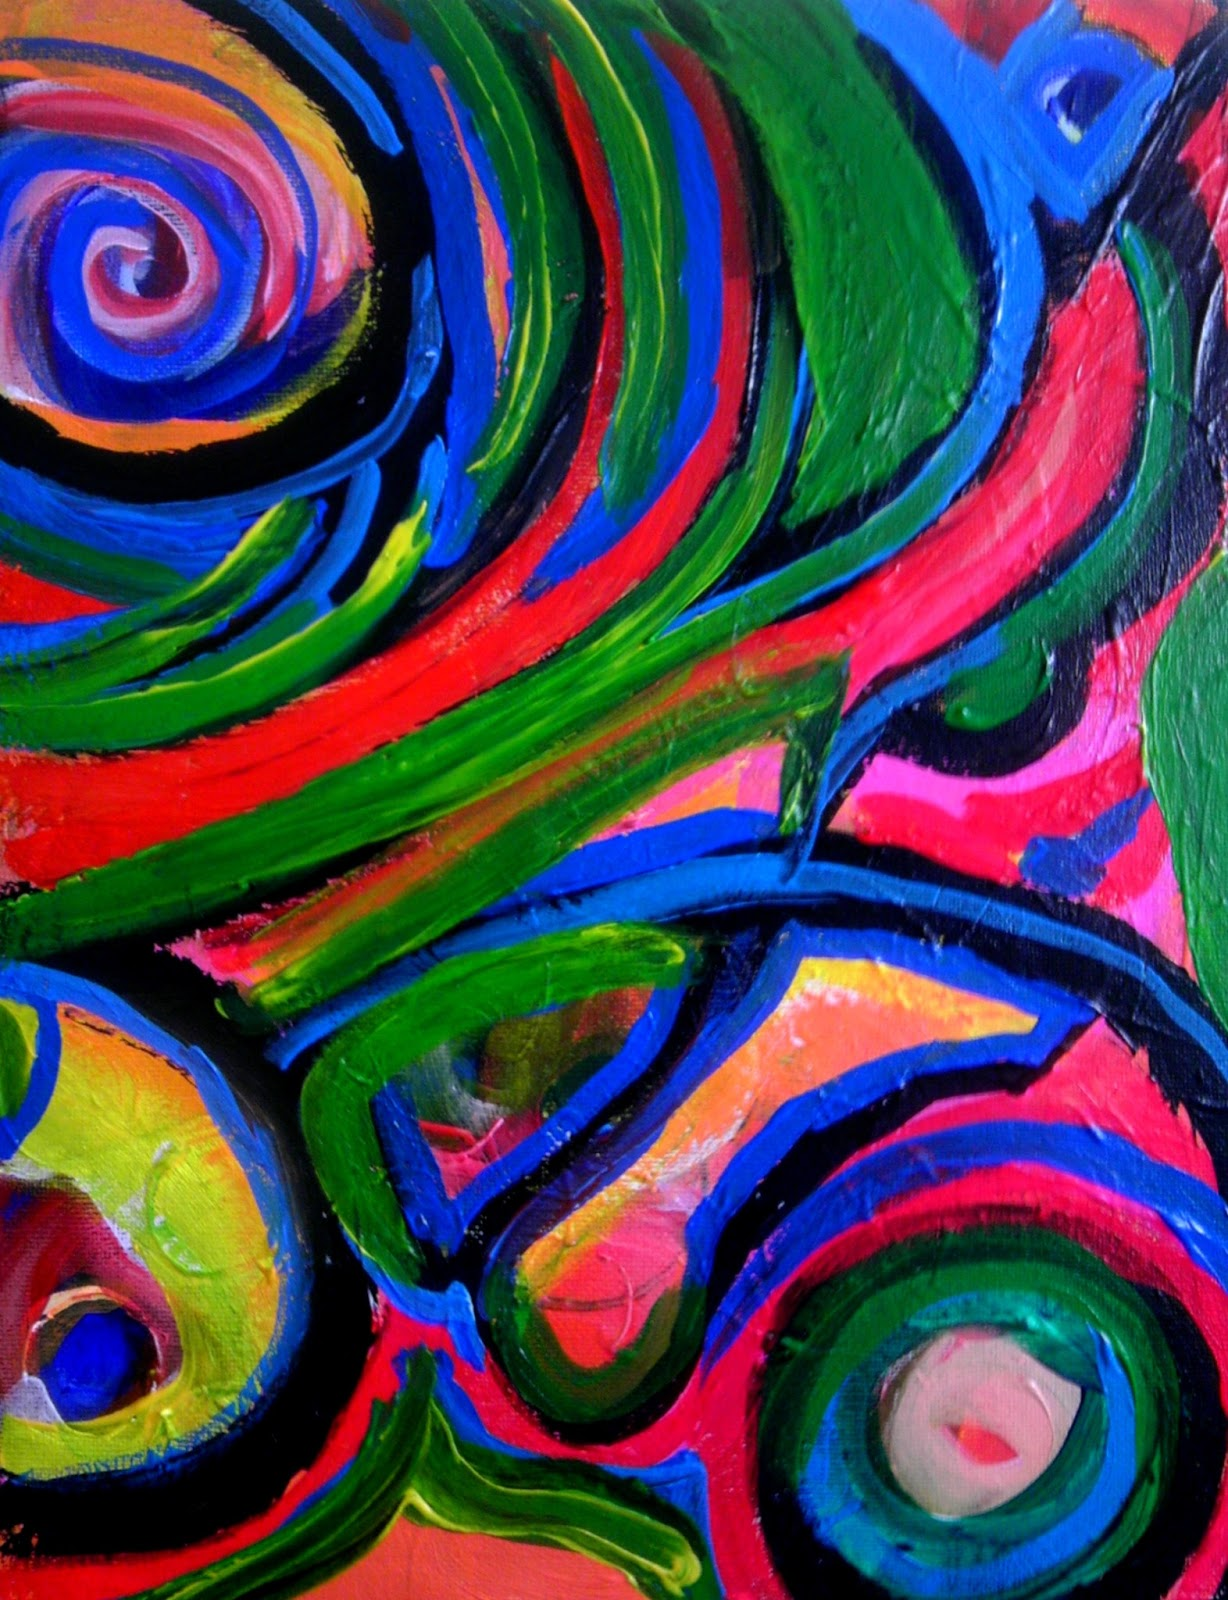 Bright Colorful Paintings | www.imgkid.com - The Image Kid ...